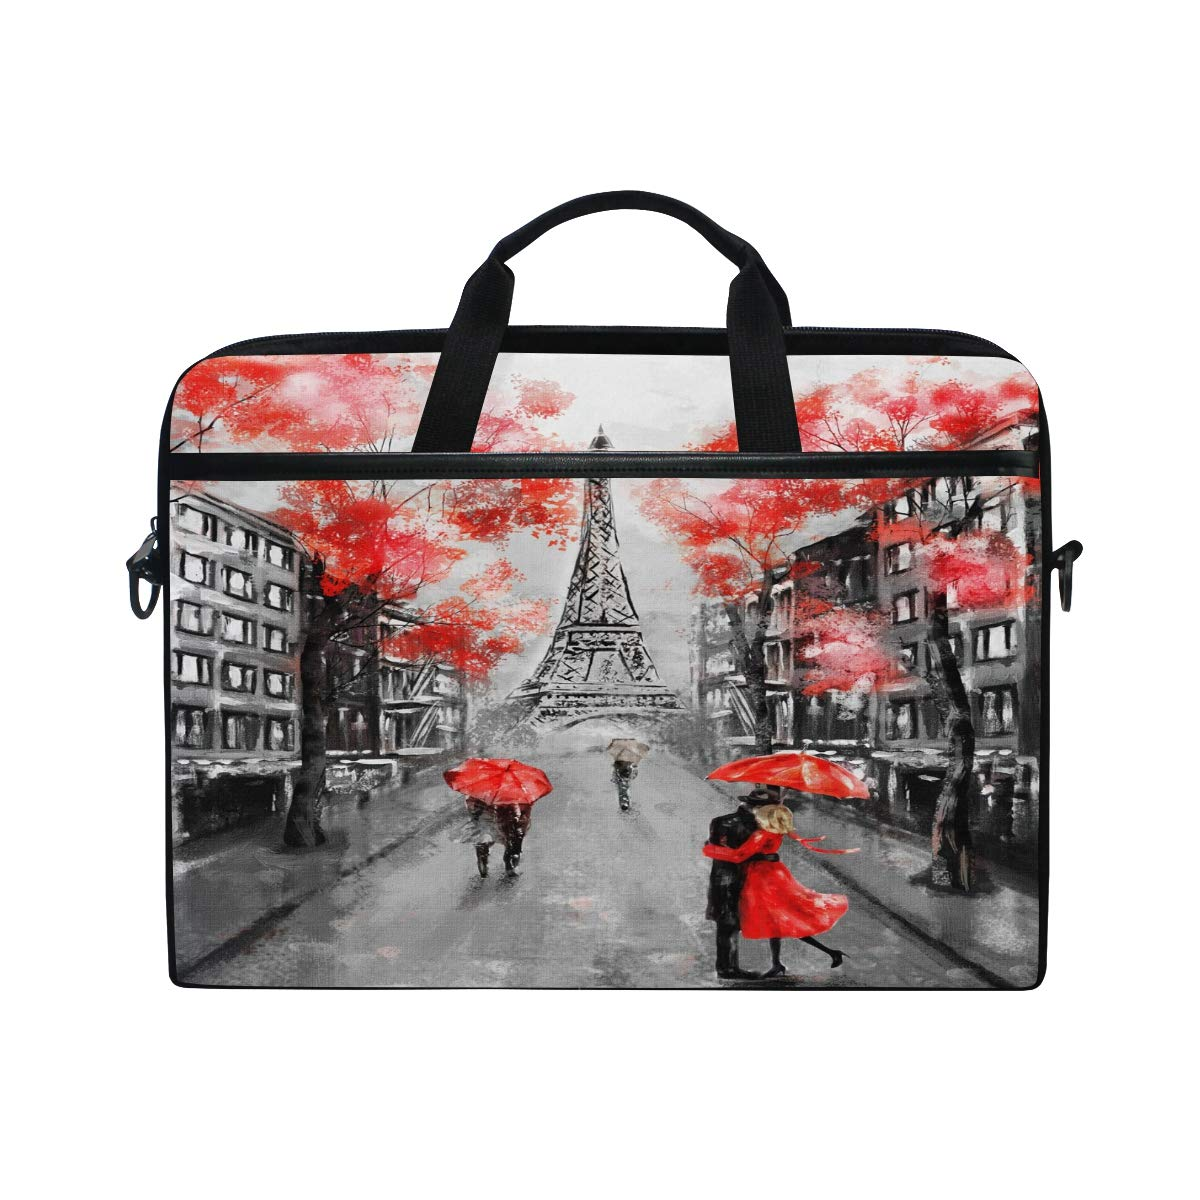 cc010cf83bb5 WXLIFE Paris Vintage Eiffel Tower 13 13.3 14 Inch Laptop Shoulder Messenger  Bag Case Sleeve Briefcase with Handle Strap for Men Women Boys Girls